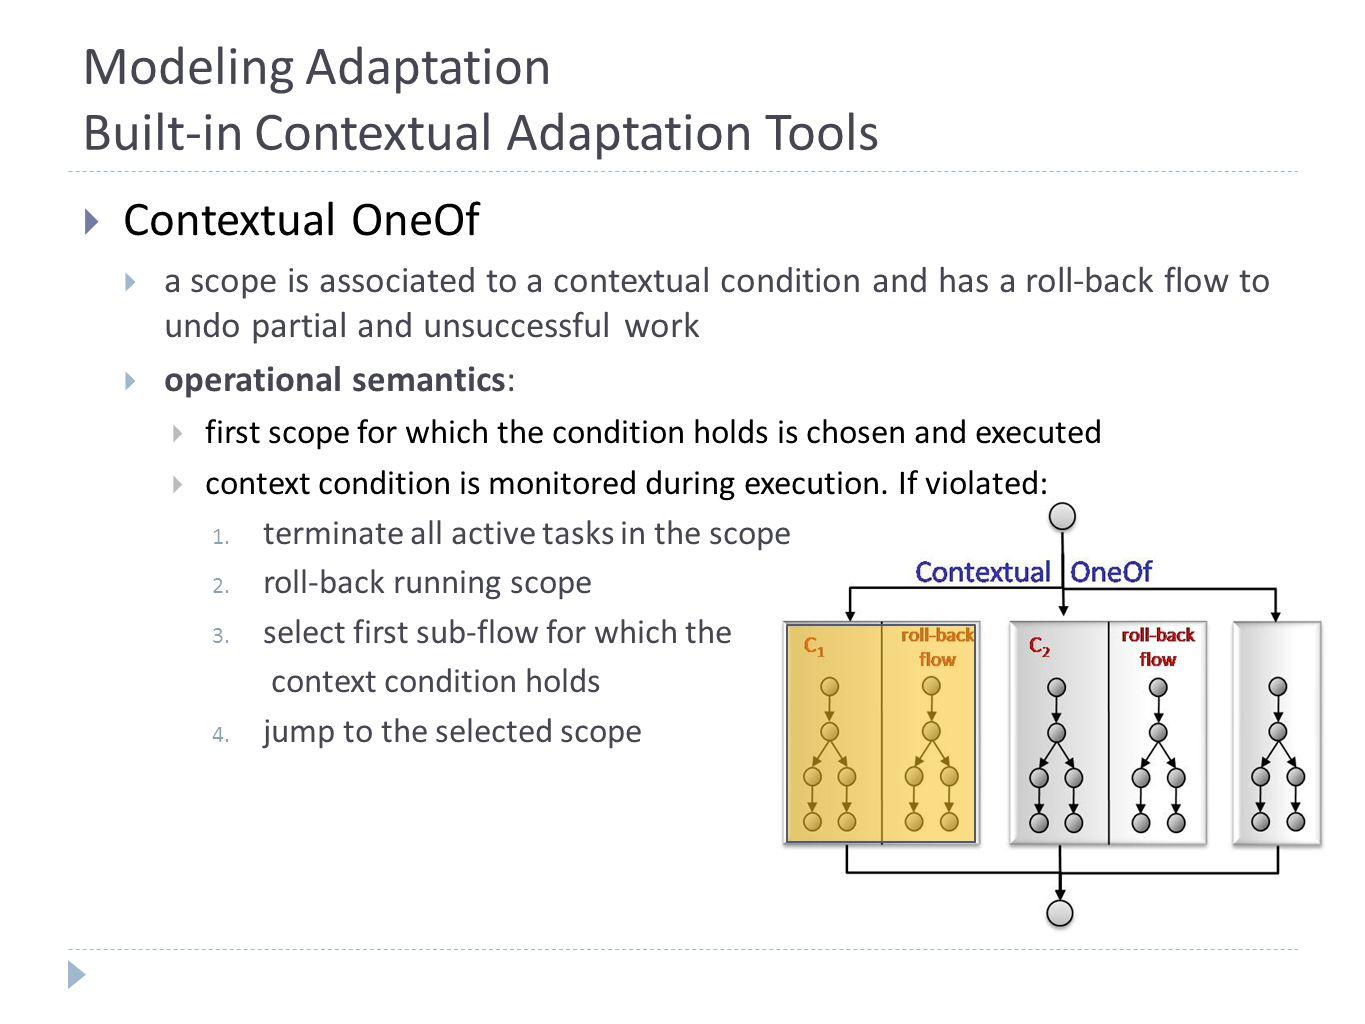 Modeling Adaptation Built-in Contextual Adaptation Tools  Contextual OneOf  a scope is associated to a contextual condition and has a roll-back flow to undo partial and unsuccessful work  operational semantics:  first scope for which the condition holds is chosen and executed  context condition is monitored during execution.